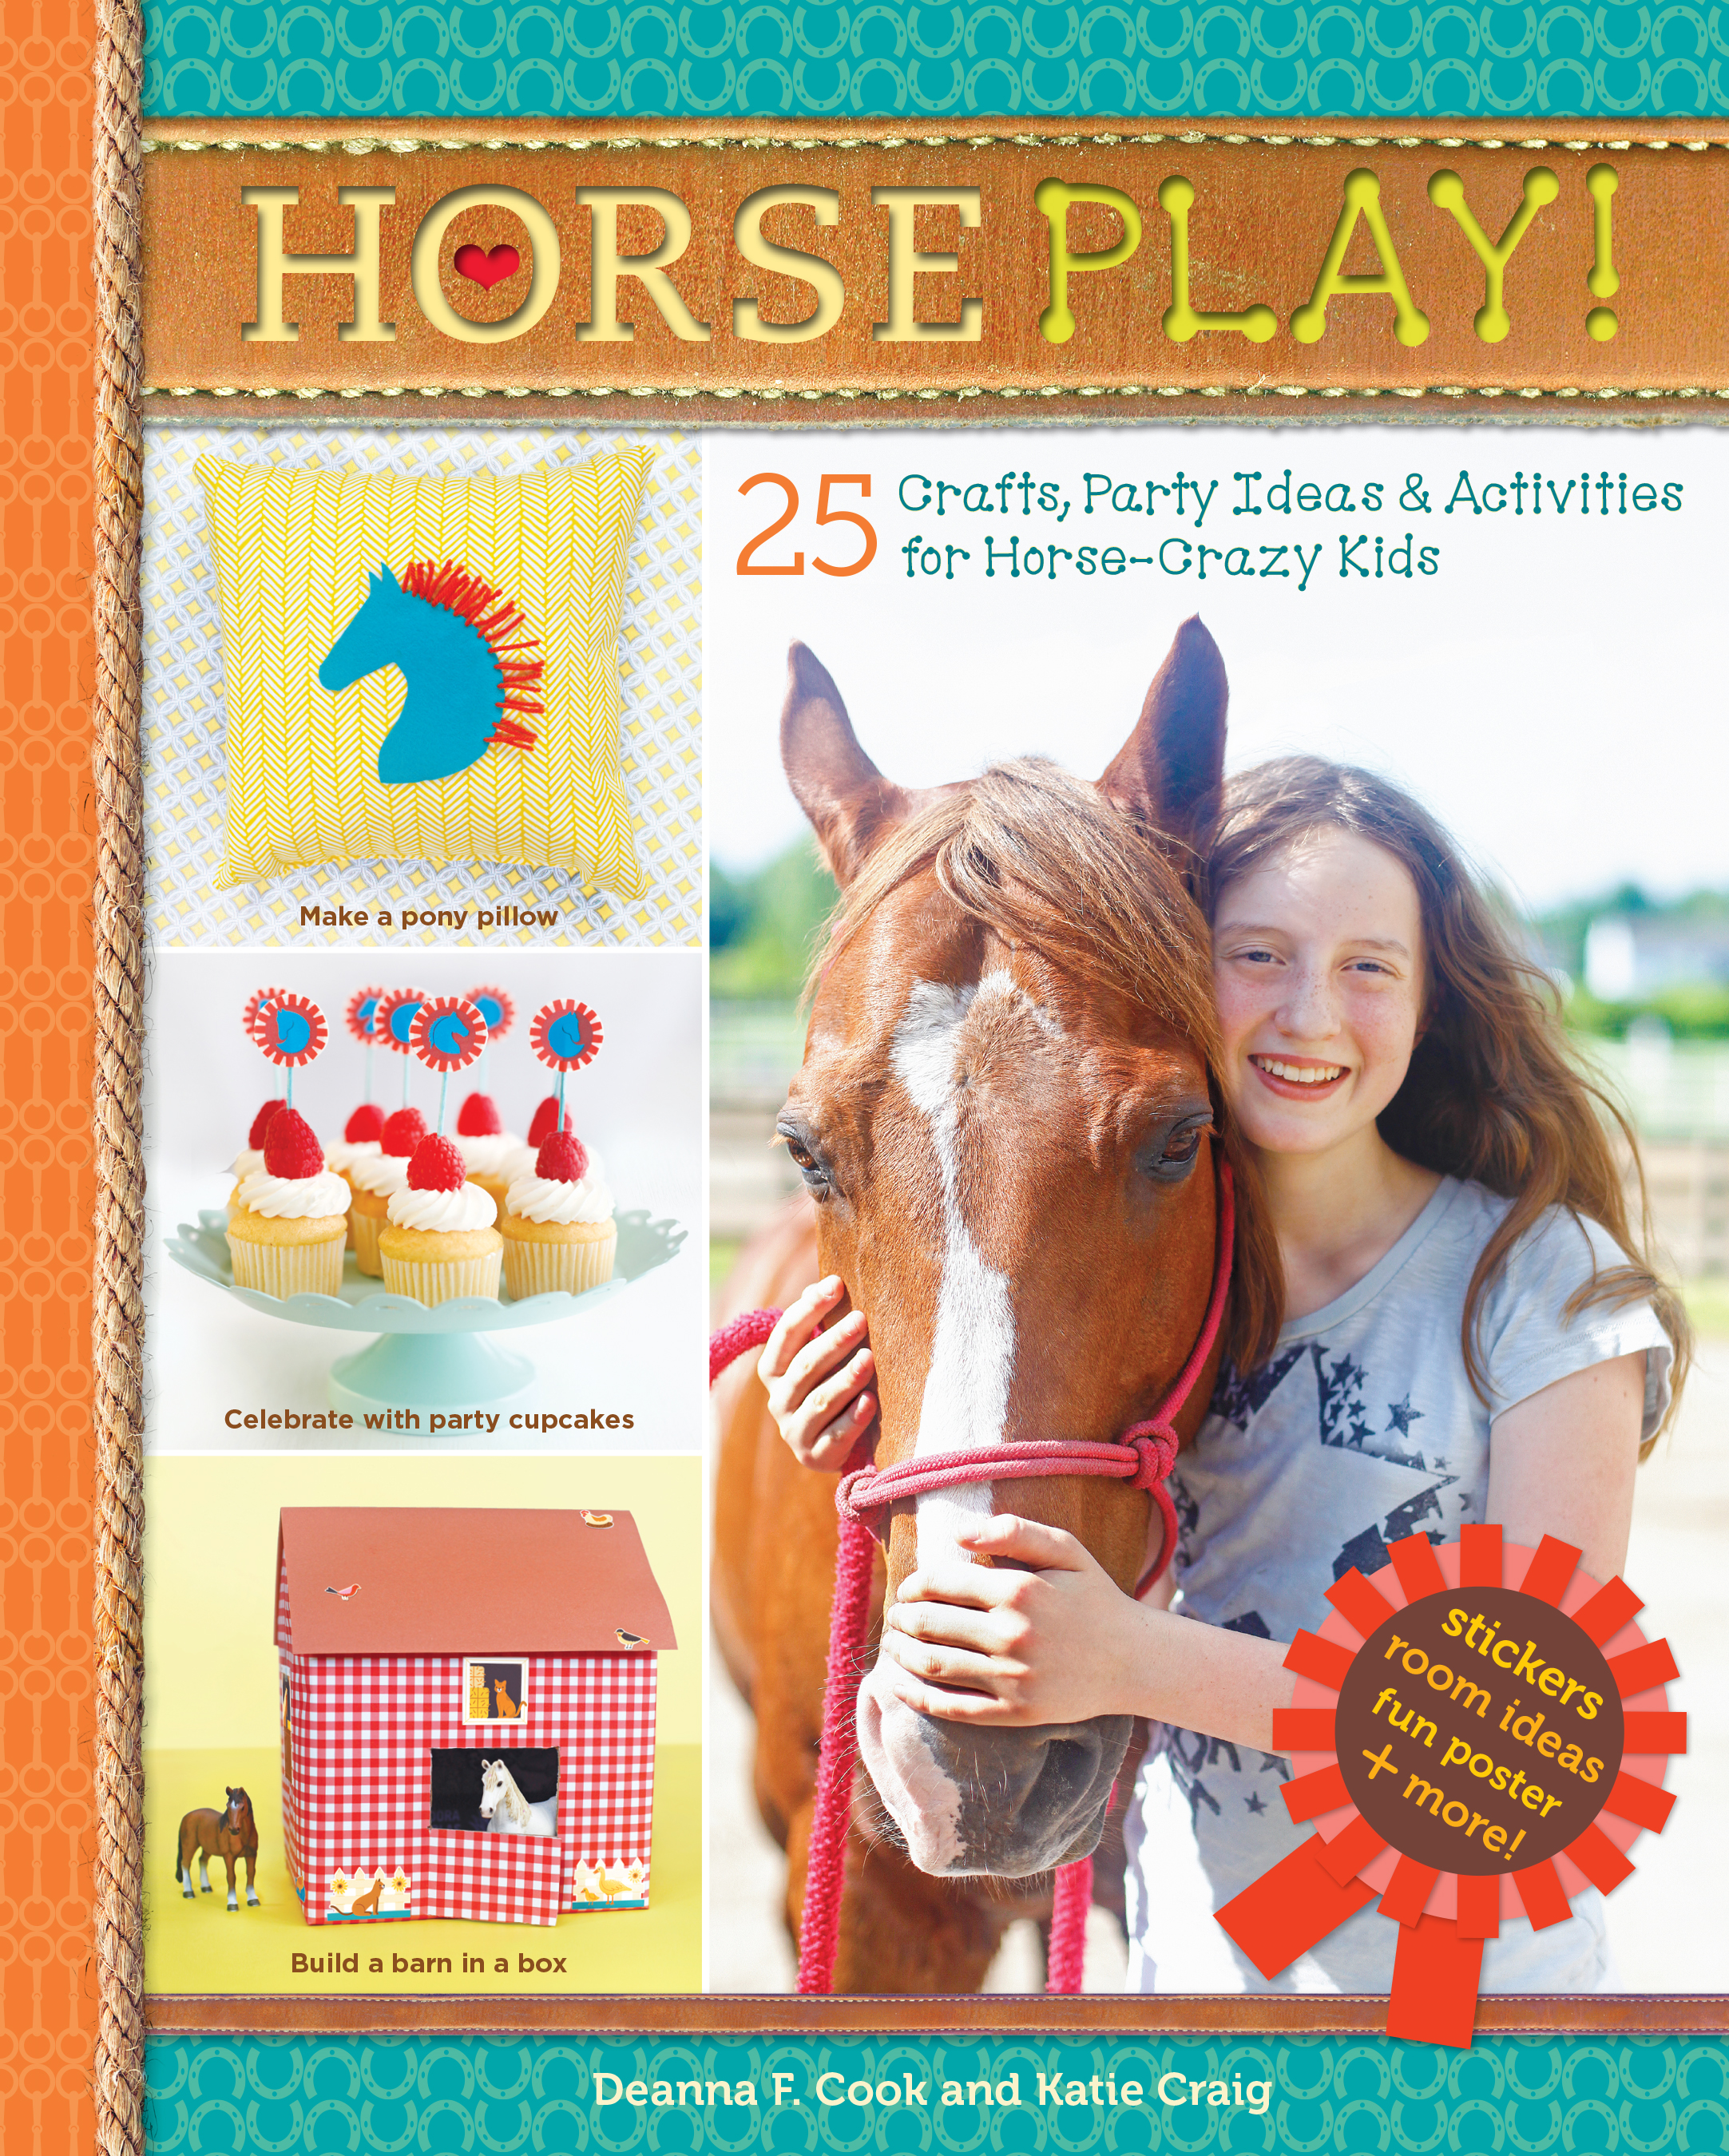 Horse Play! 25 Crafts, Party Ideas & Activities for Horse-Crazy Kids - Deanna F. Cook